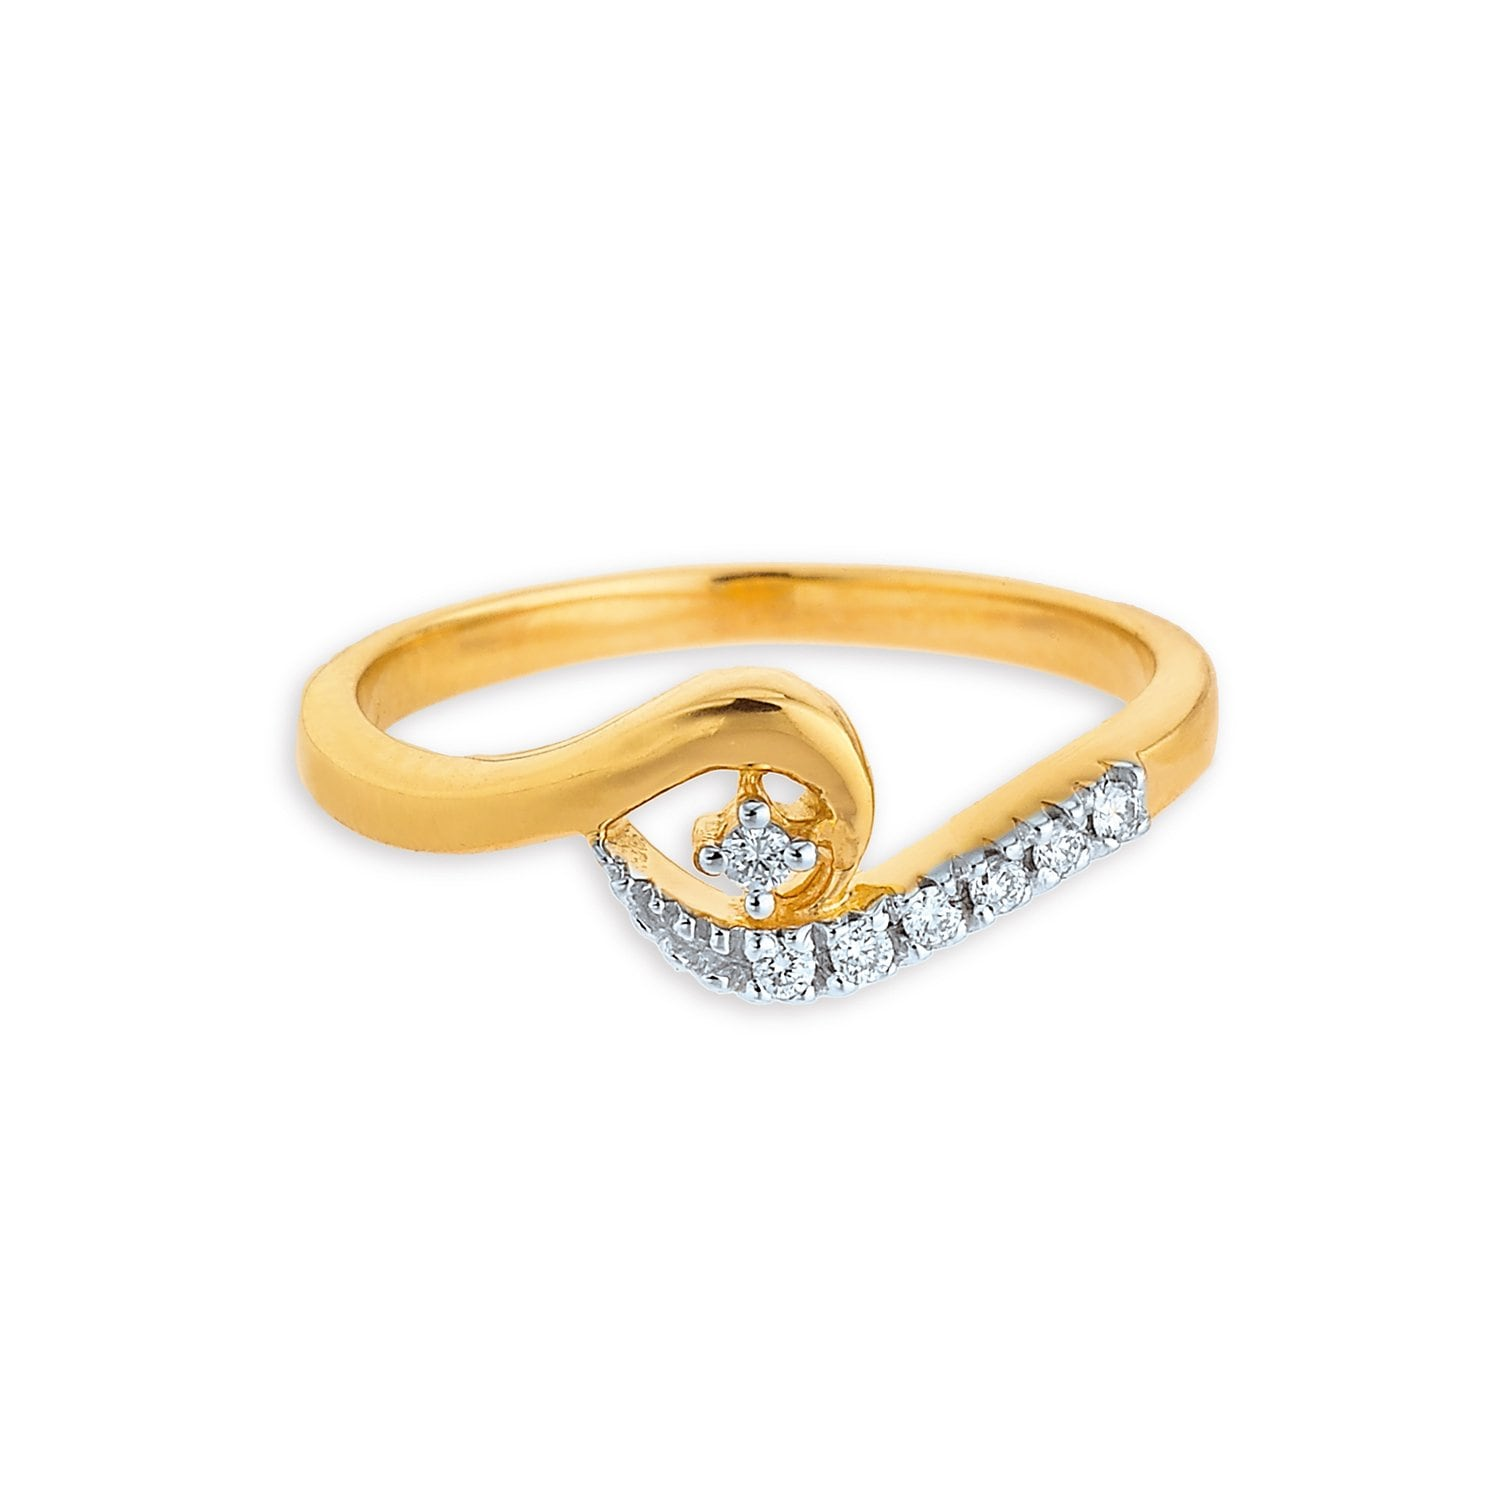 Diamond Rings and Bands for Women  De Beers